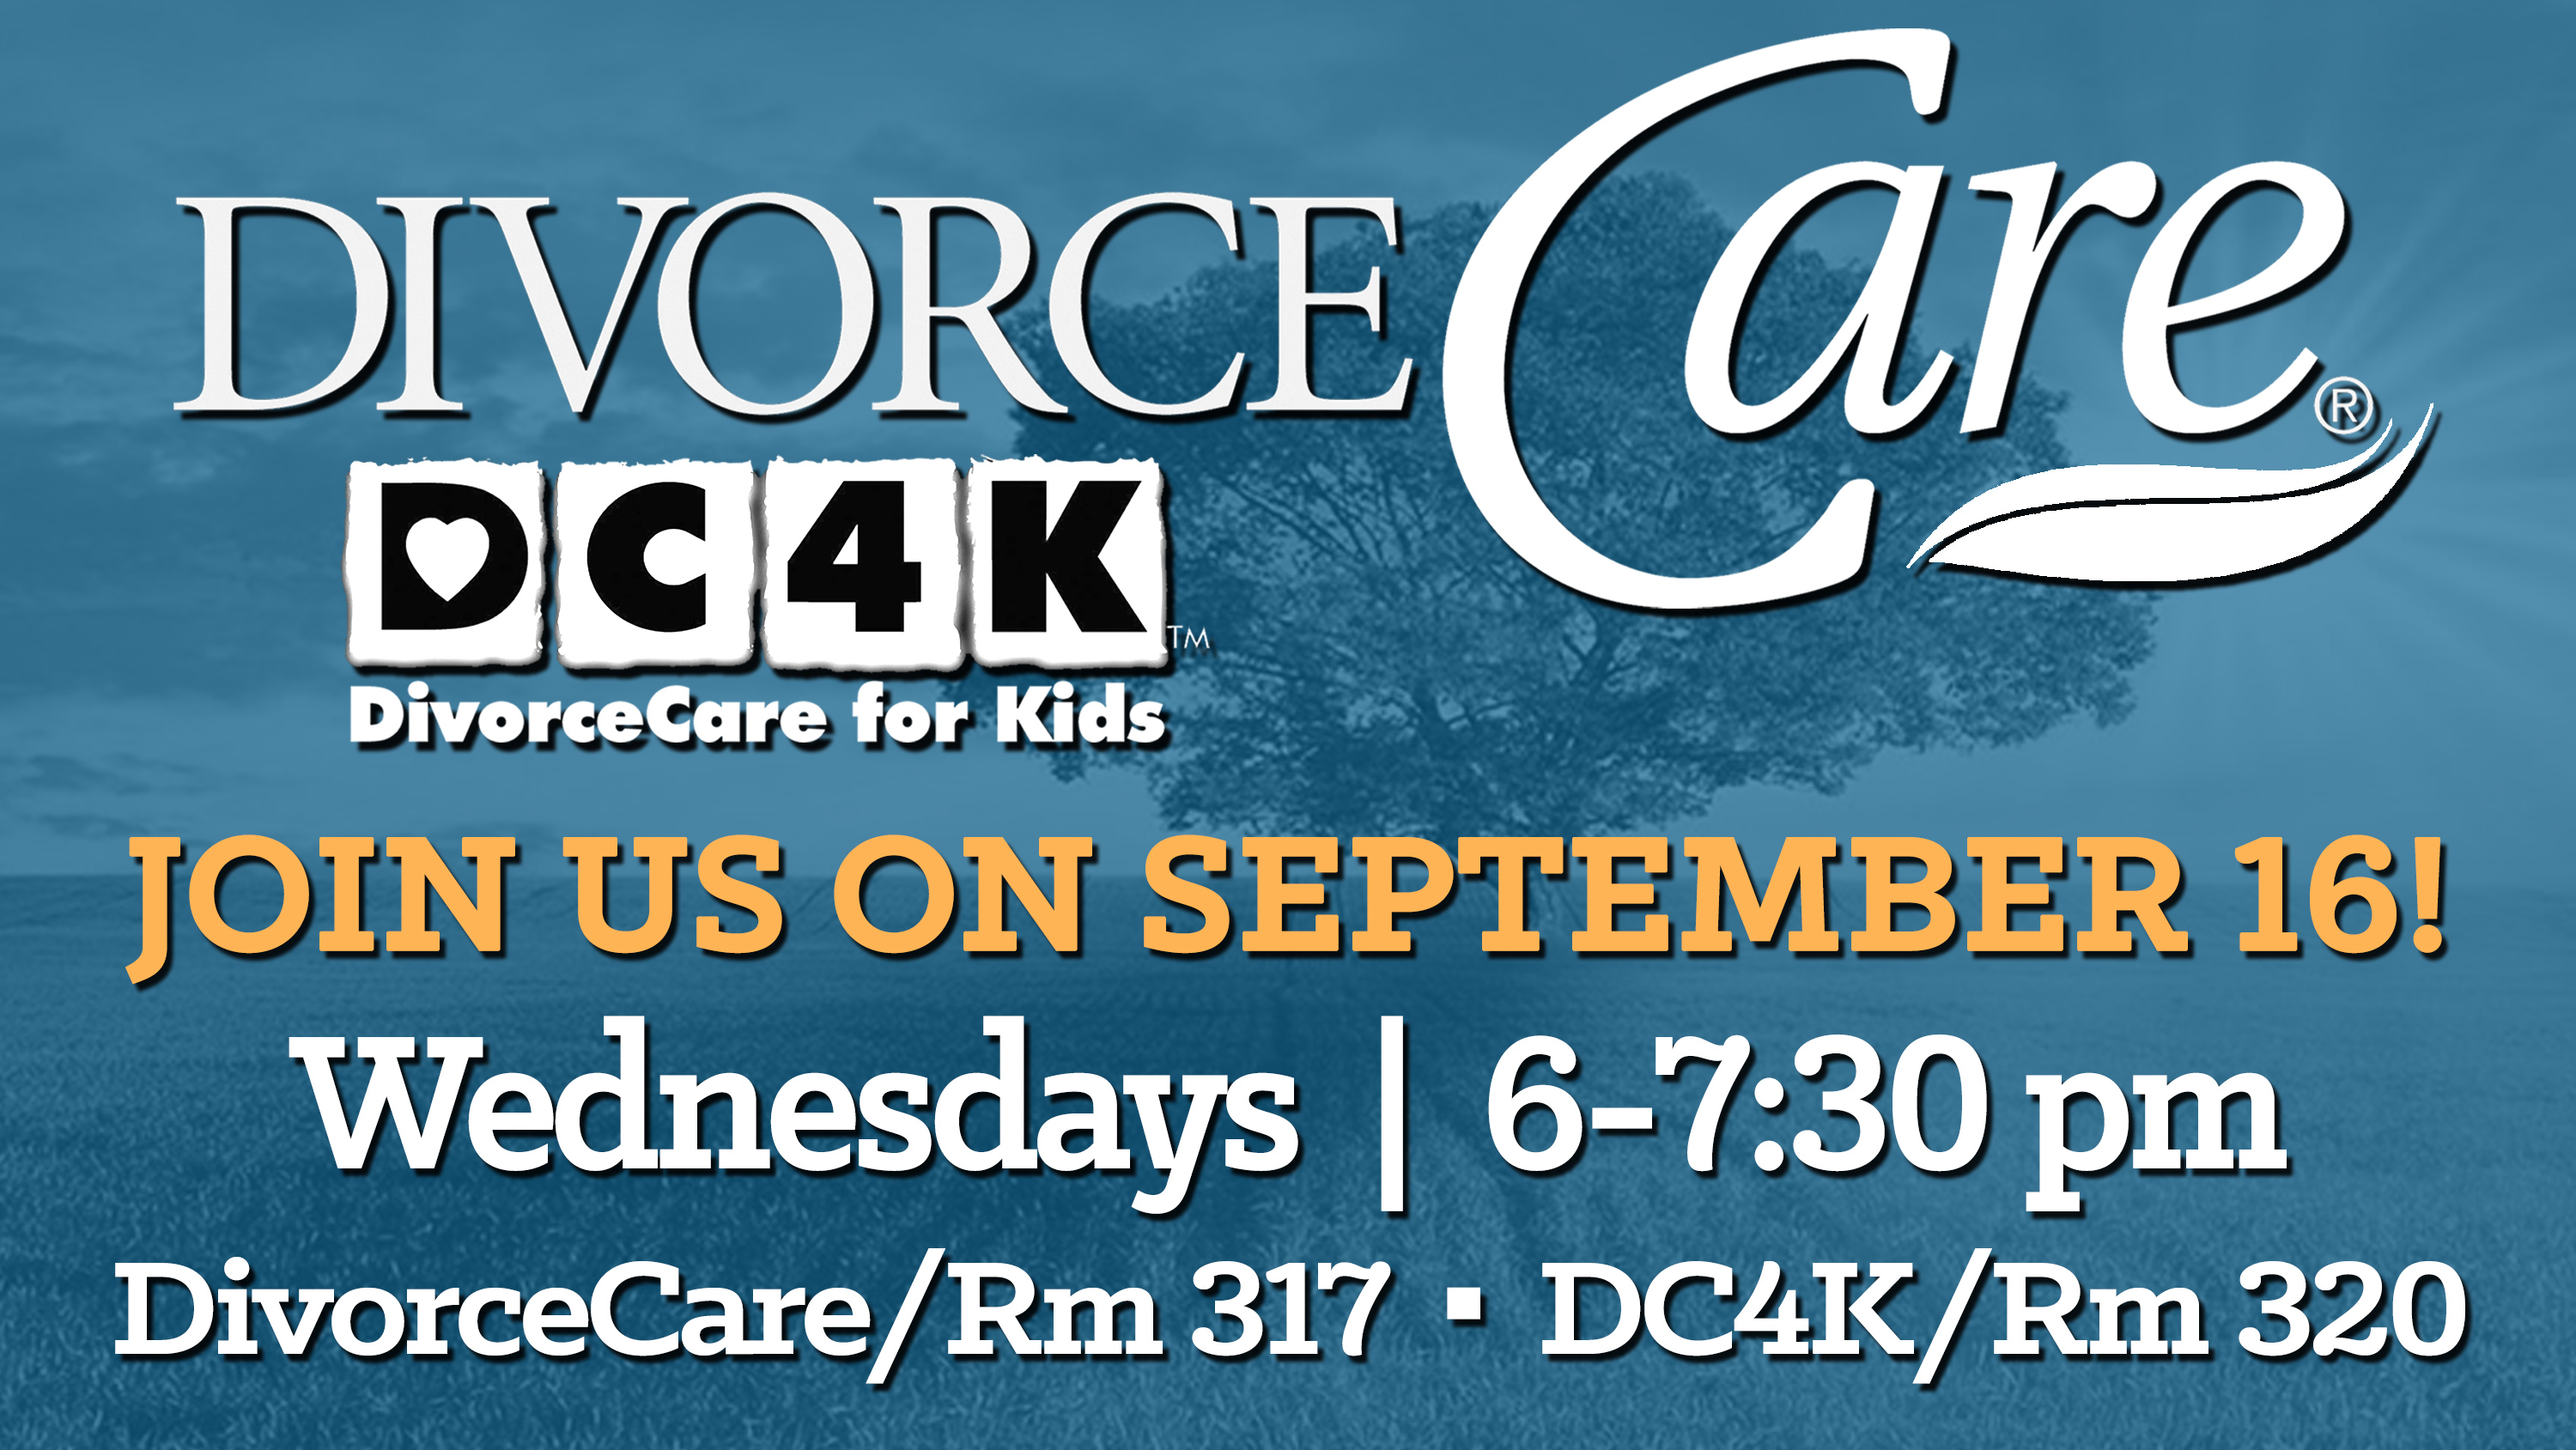 DivorceCare and DC4K image